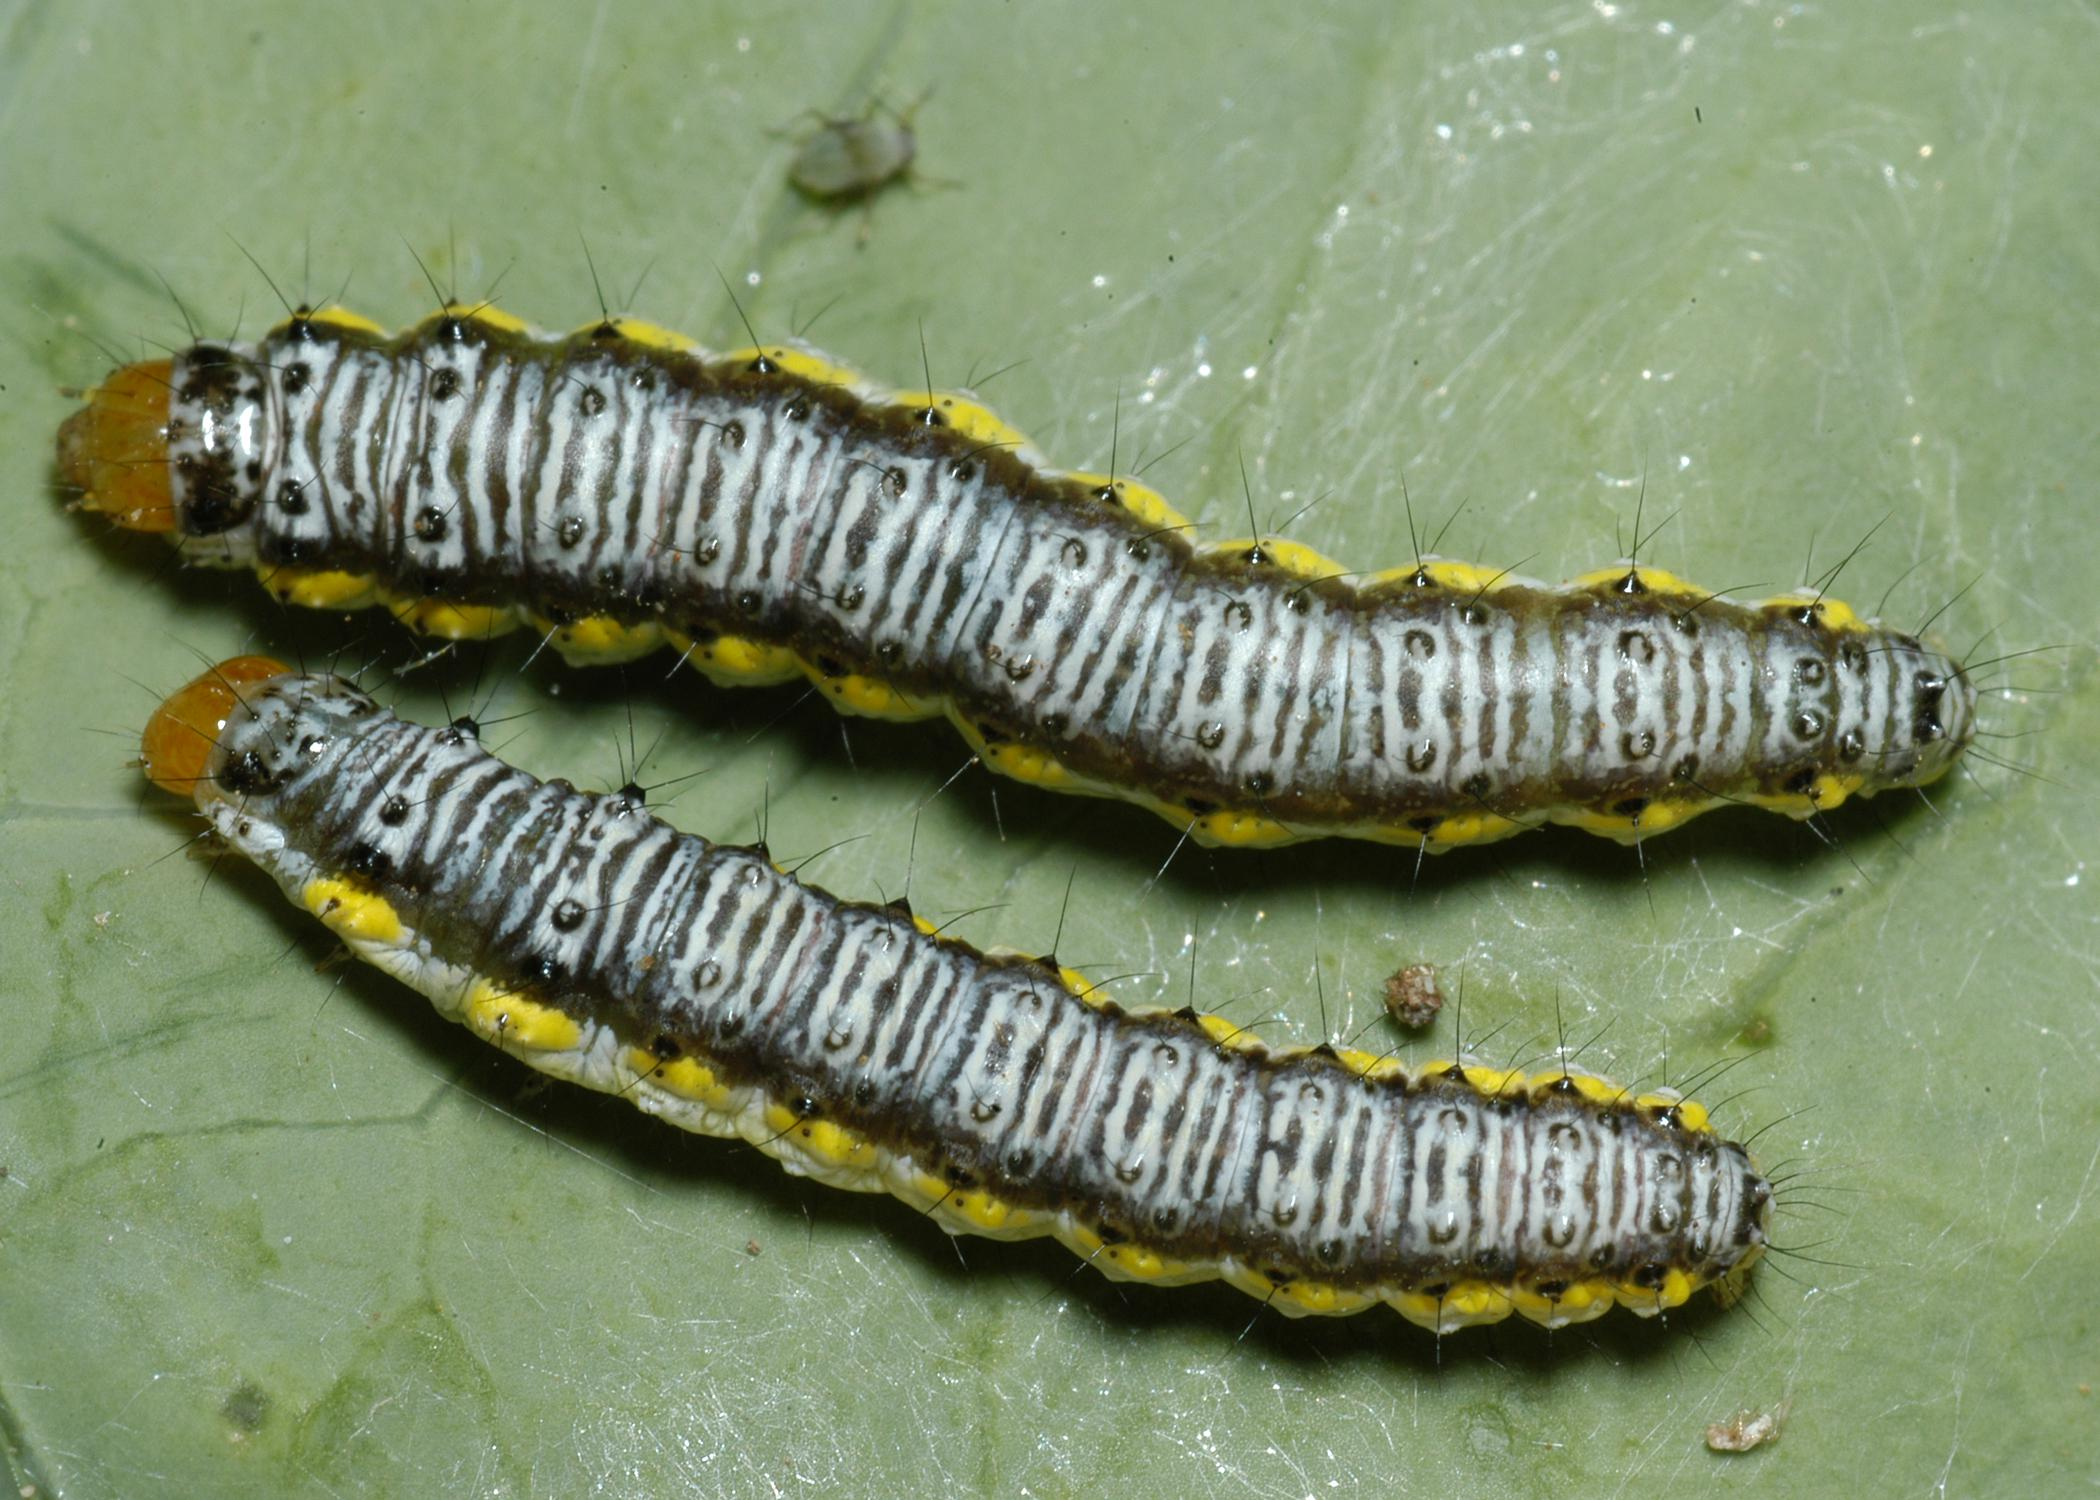 Two caterpillars with white, black and yellow markings sit side by side on a leaf.